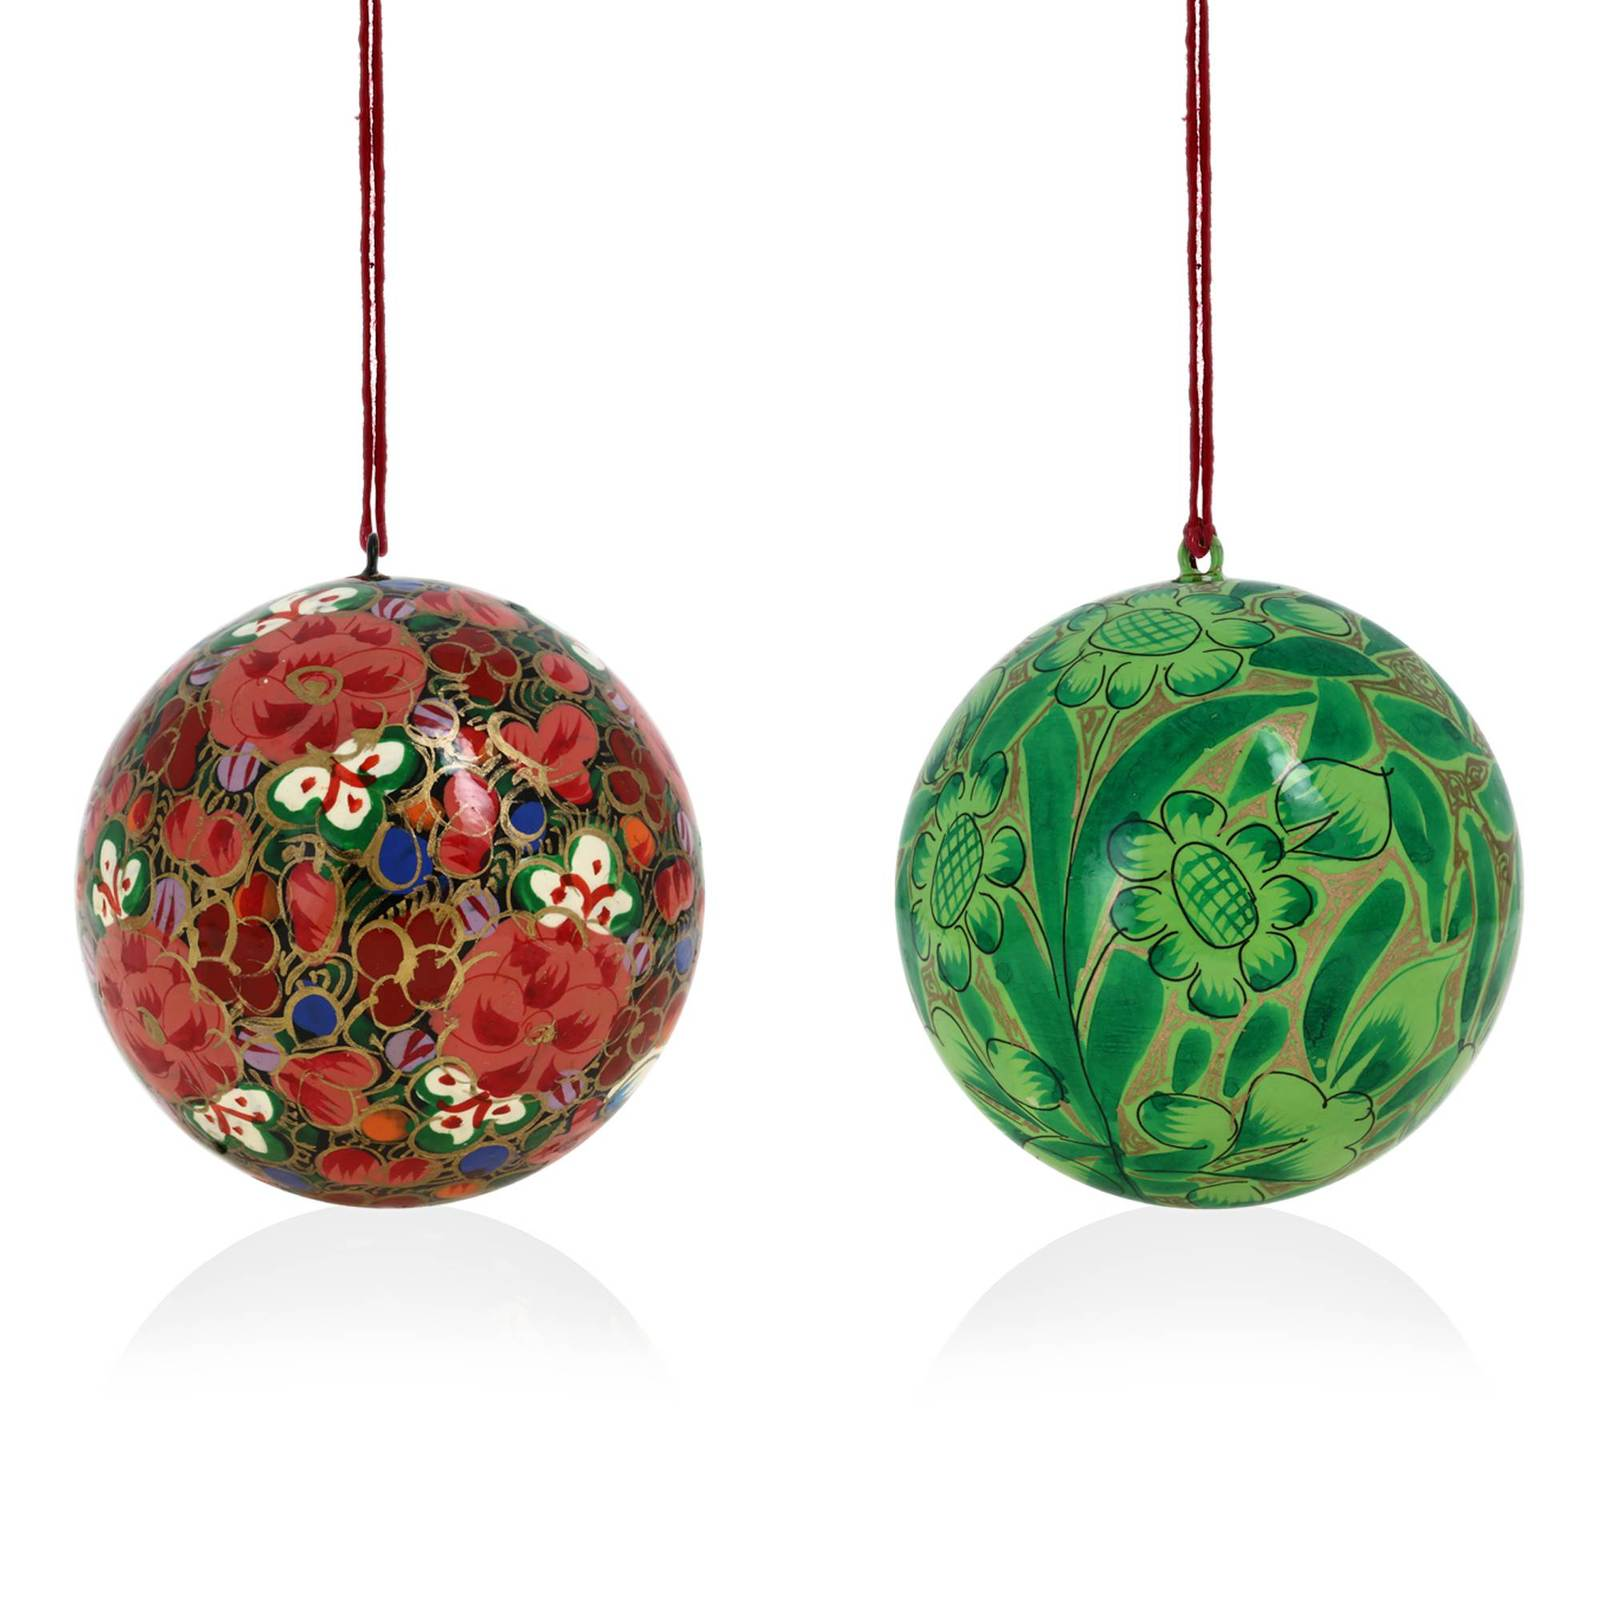 Decoration christmas ornaments handmade paper mache for Christmas decorations